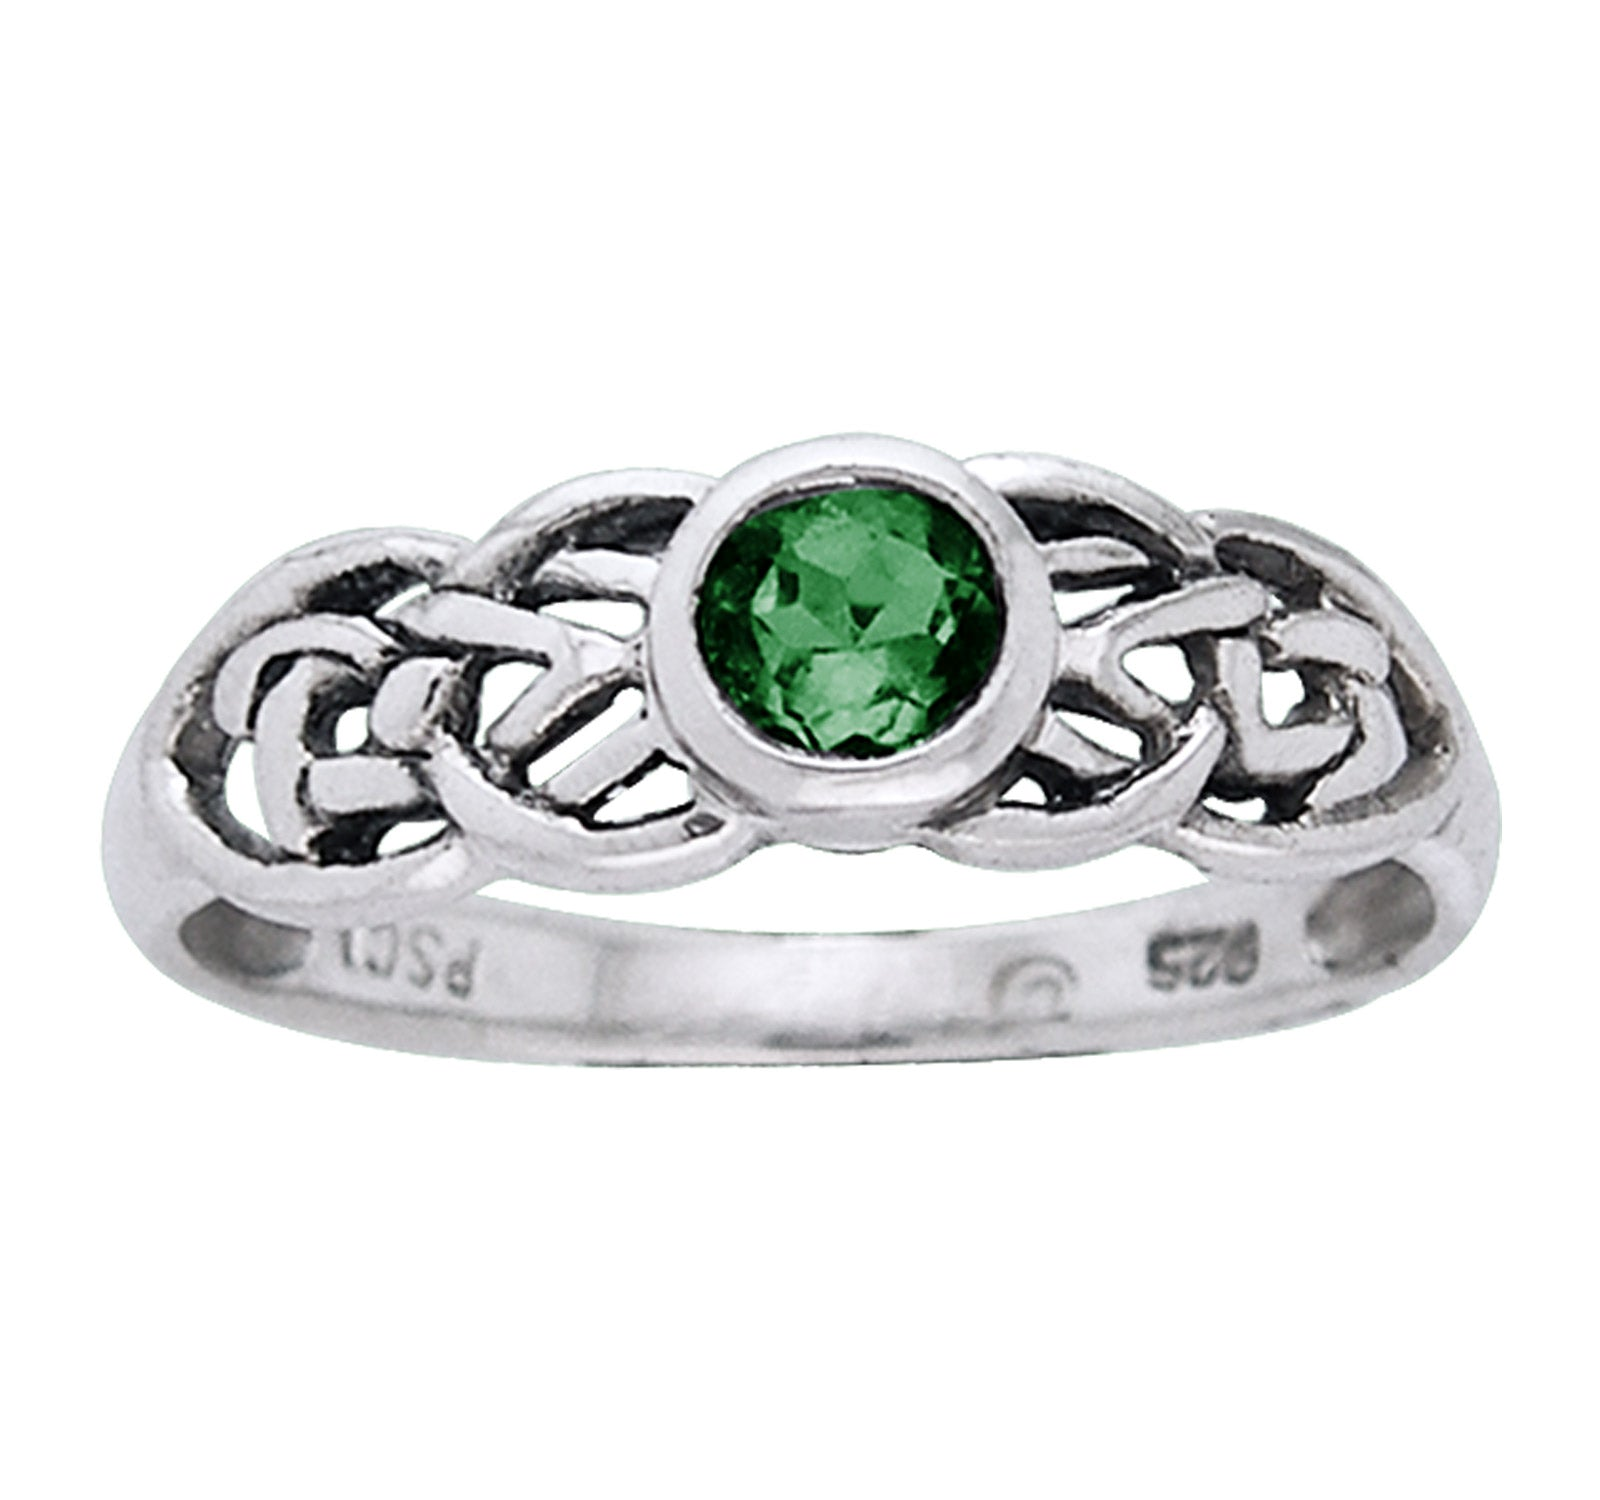 Petite Celtic Knot Birthstone Ring Sterling Silver Green Glass For May - Silver Insanity